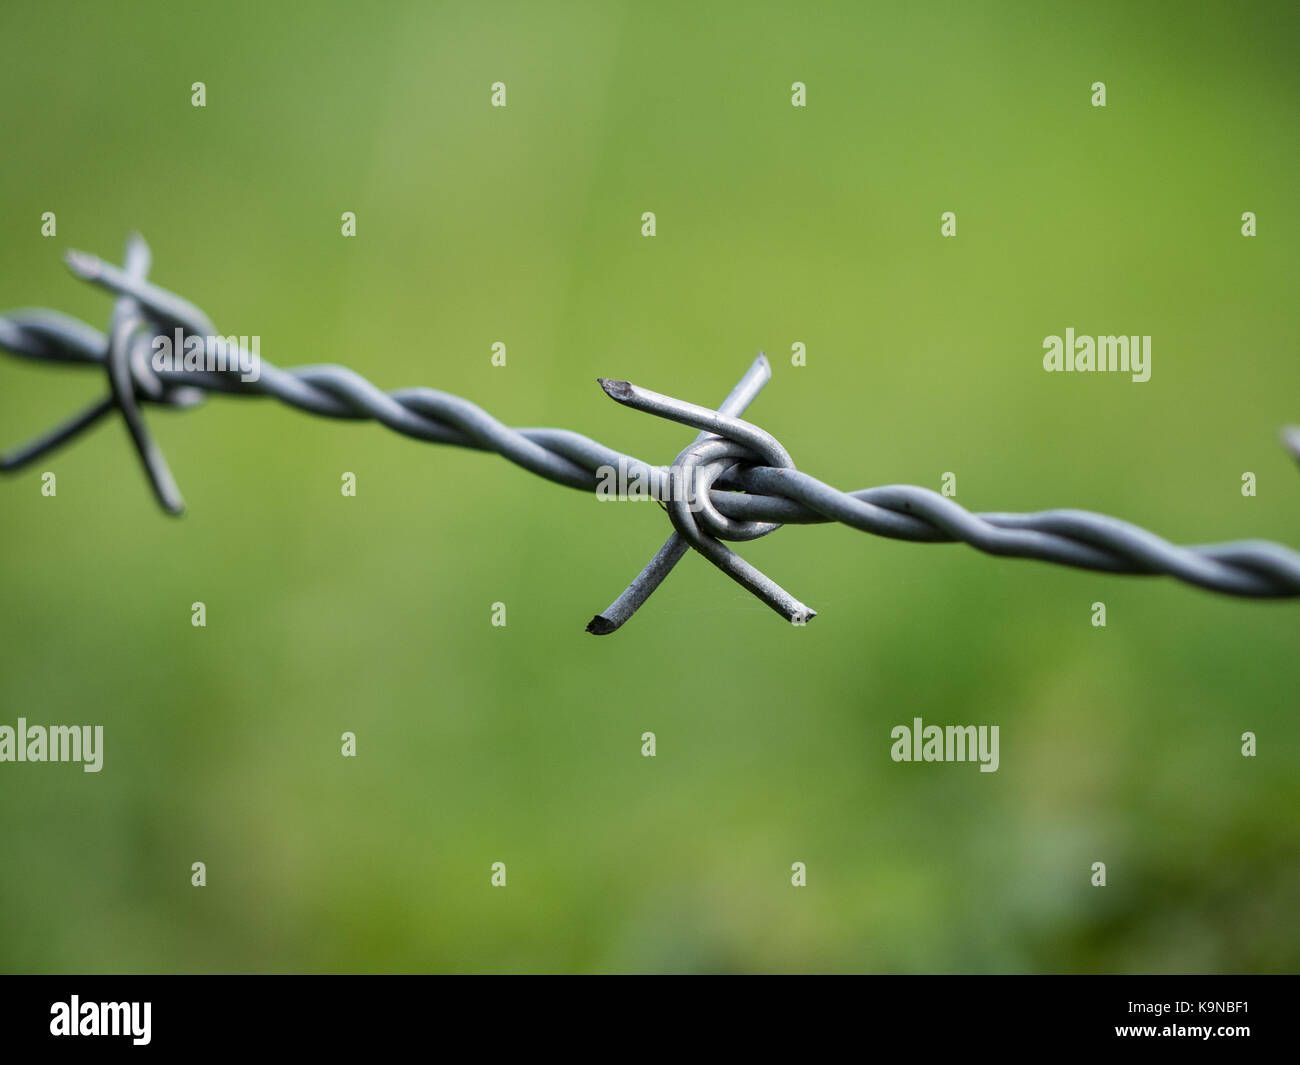 Close up of a spike of barbed wire against a natural background - Stock Image